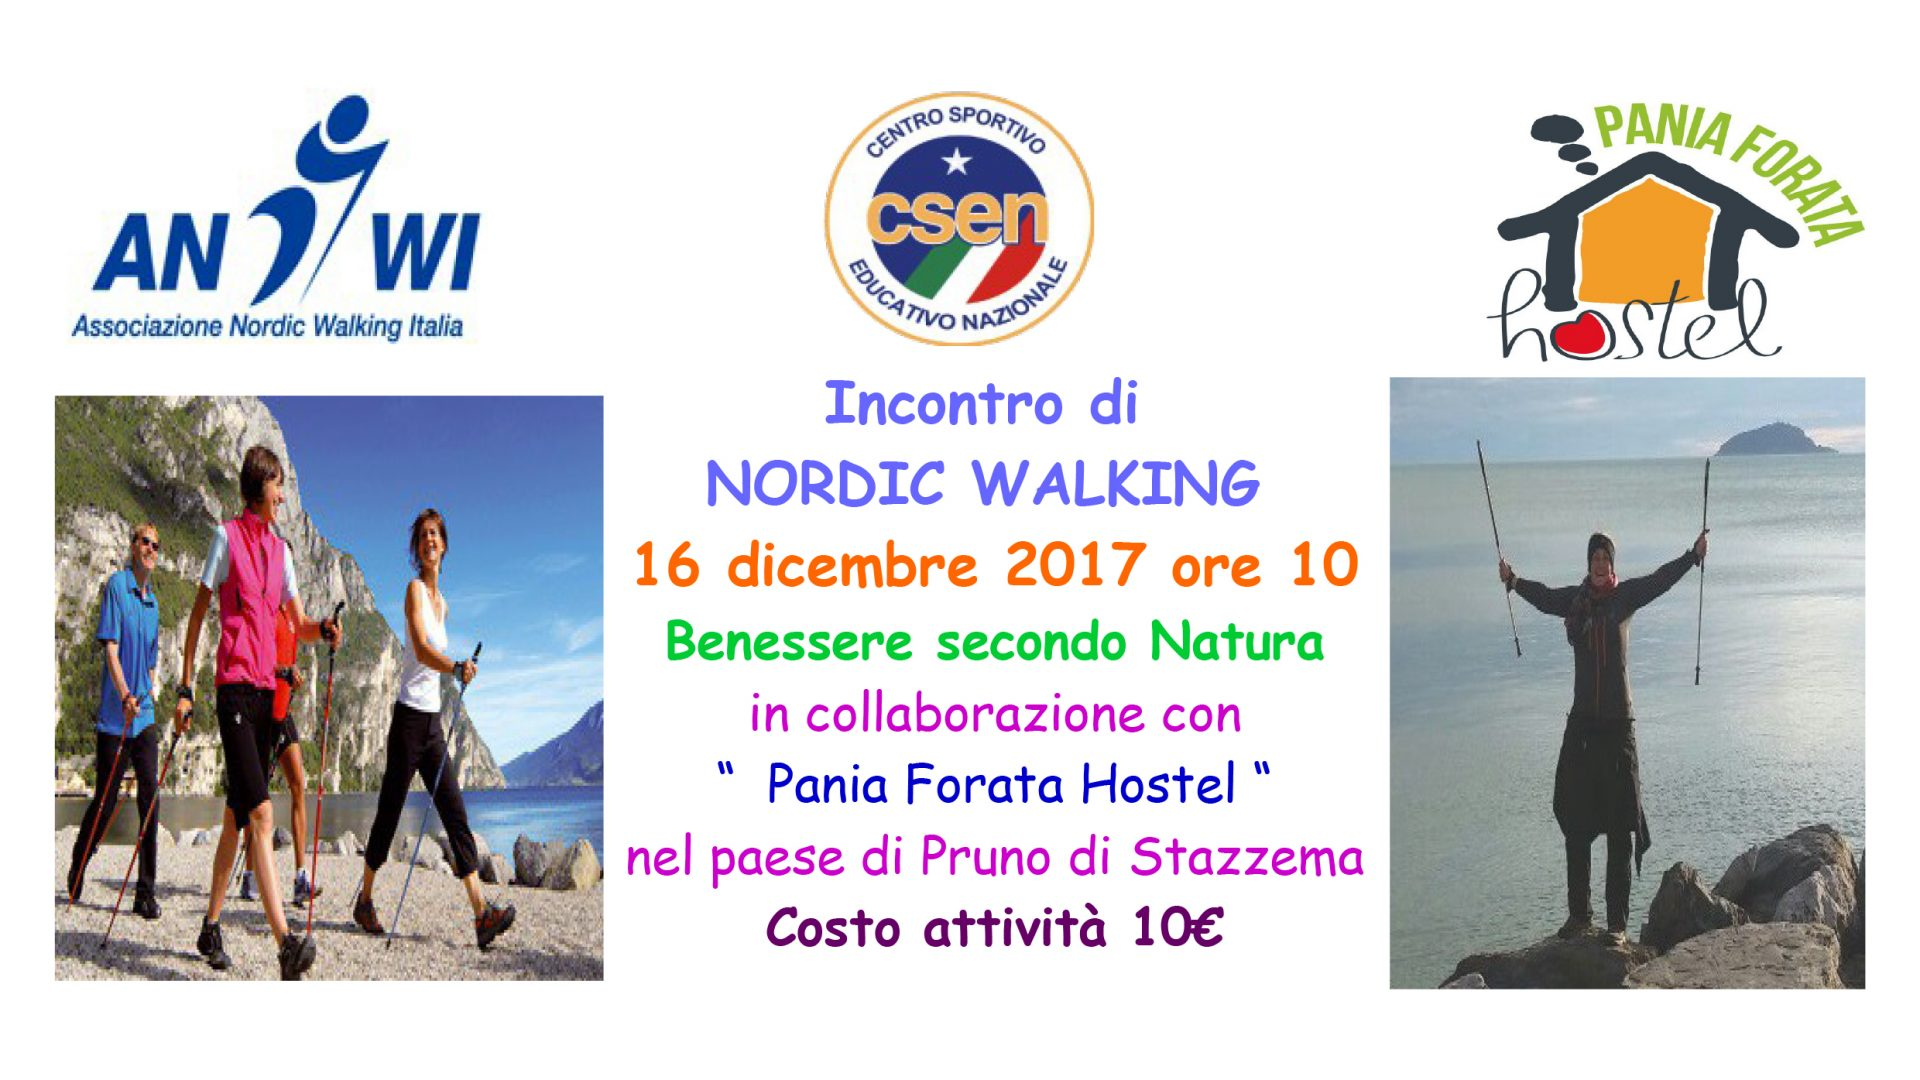 Incontro di NORDIC WALKING